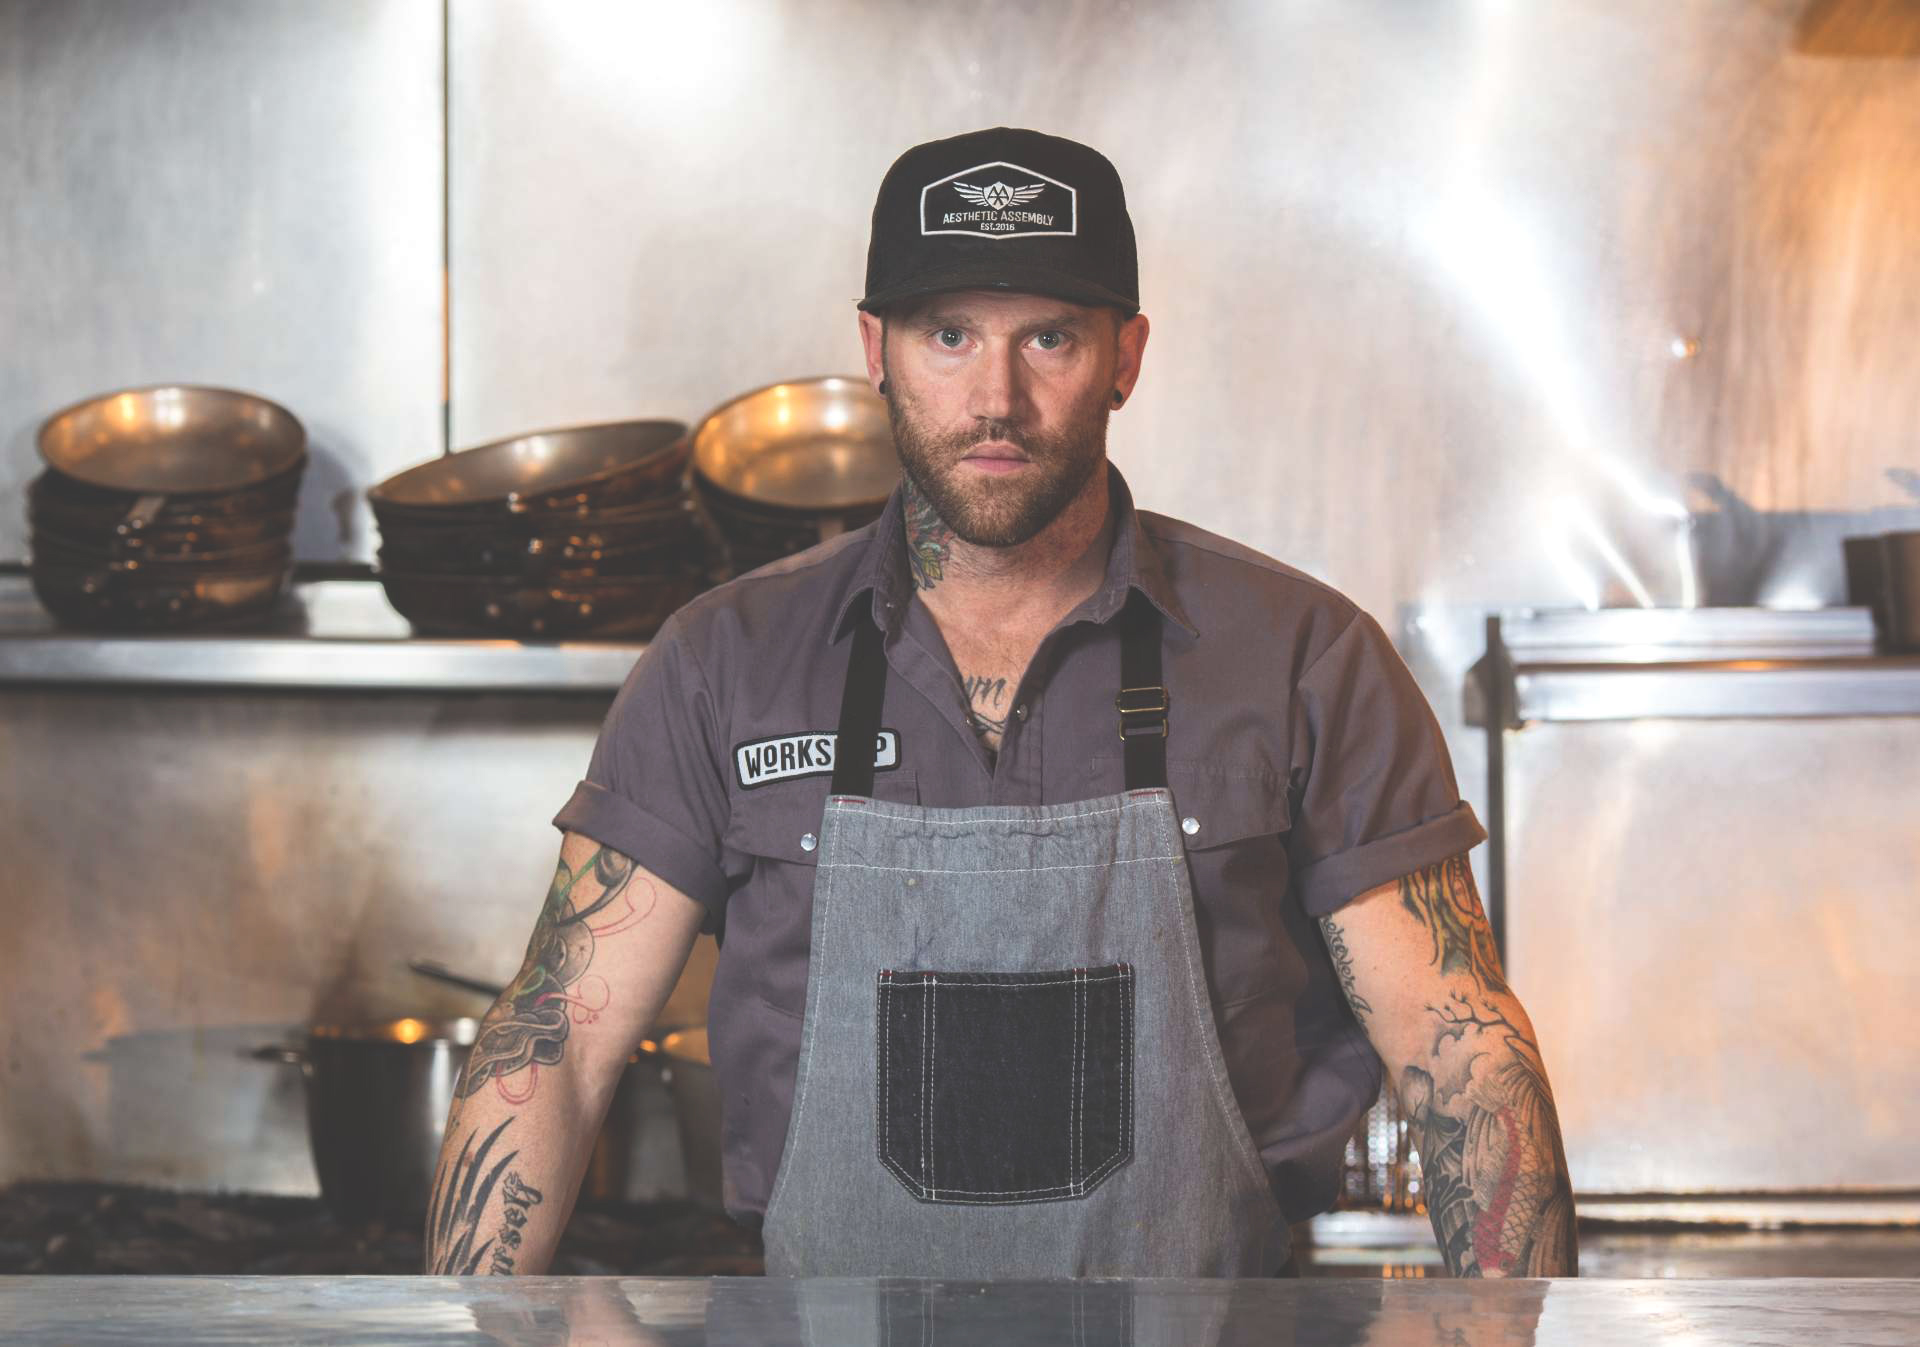 11 Calgary Chefs Who Have Competed on TV Cooking